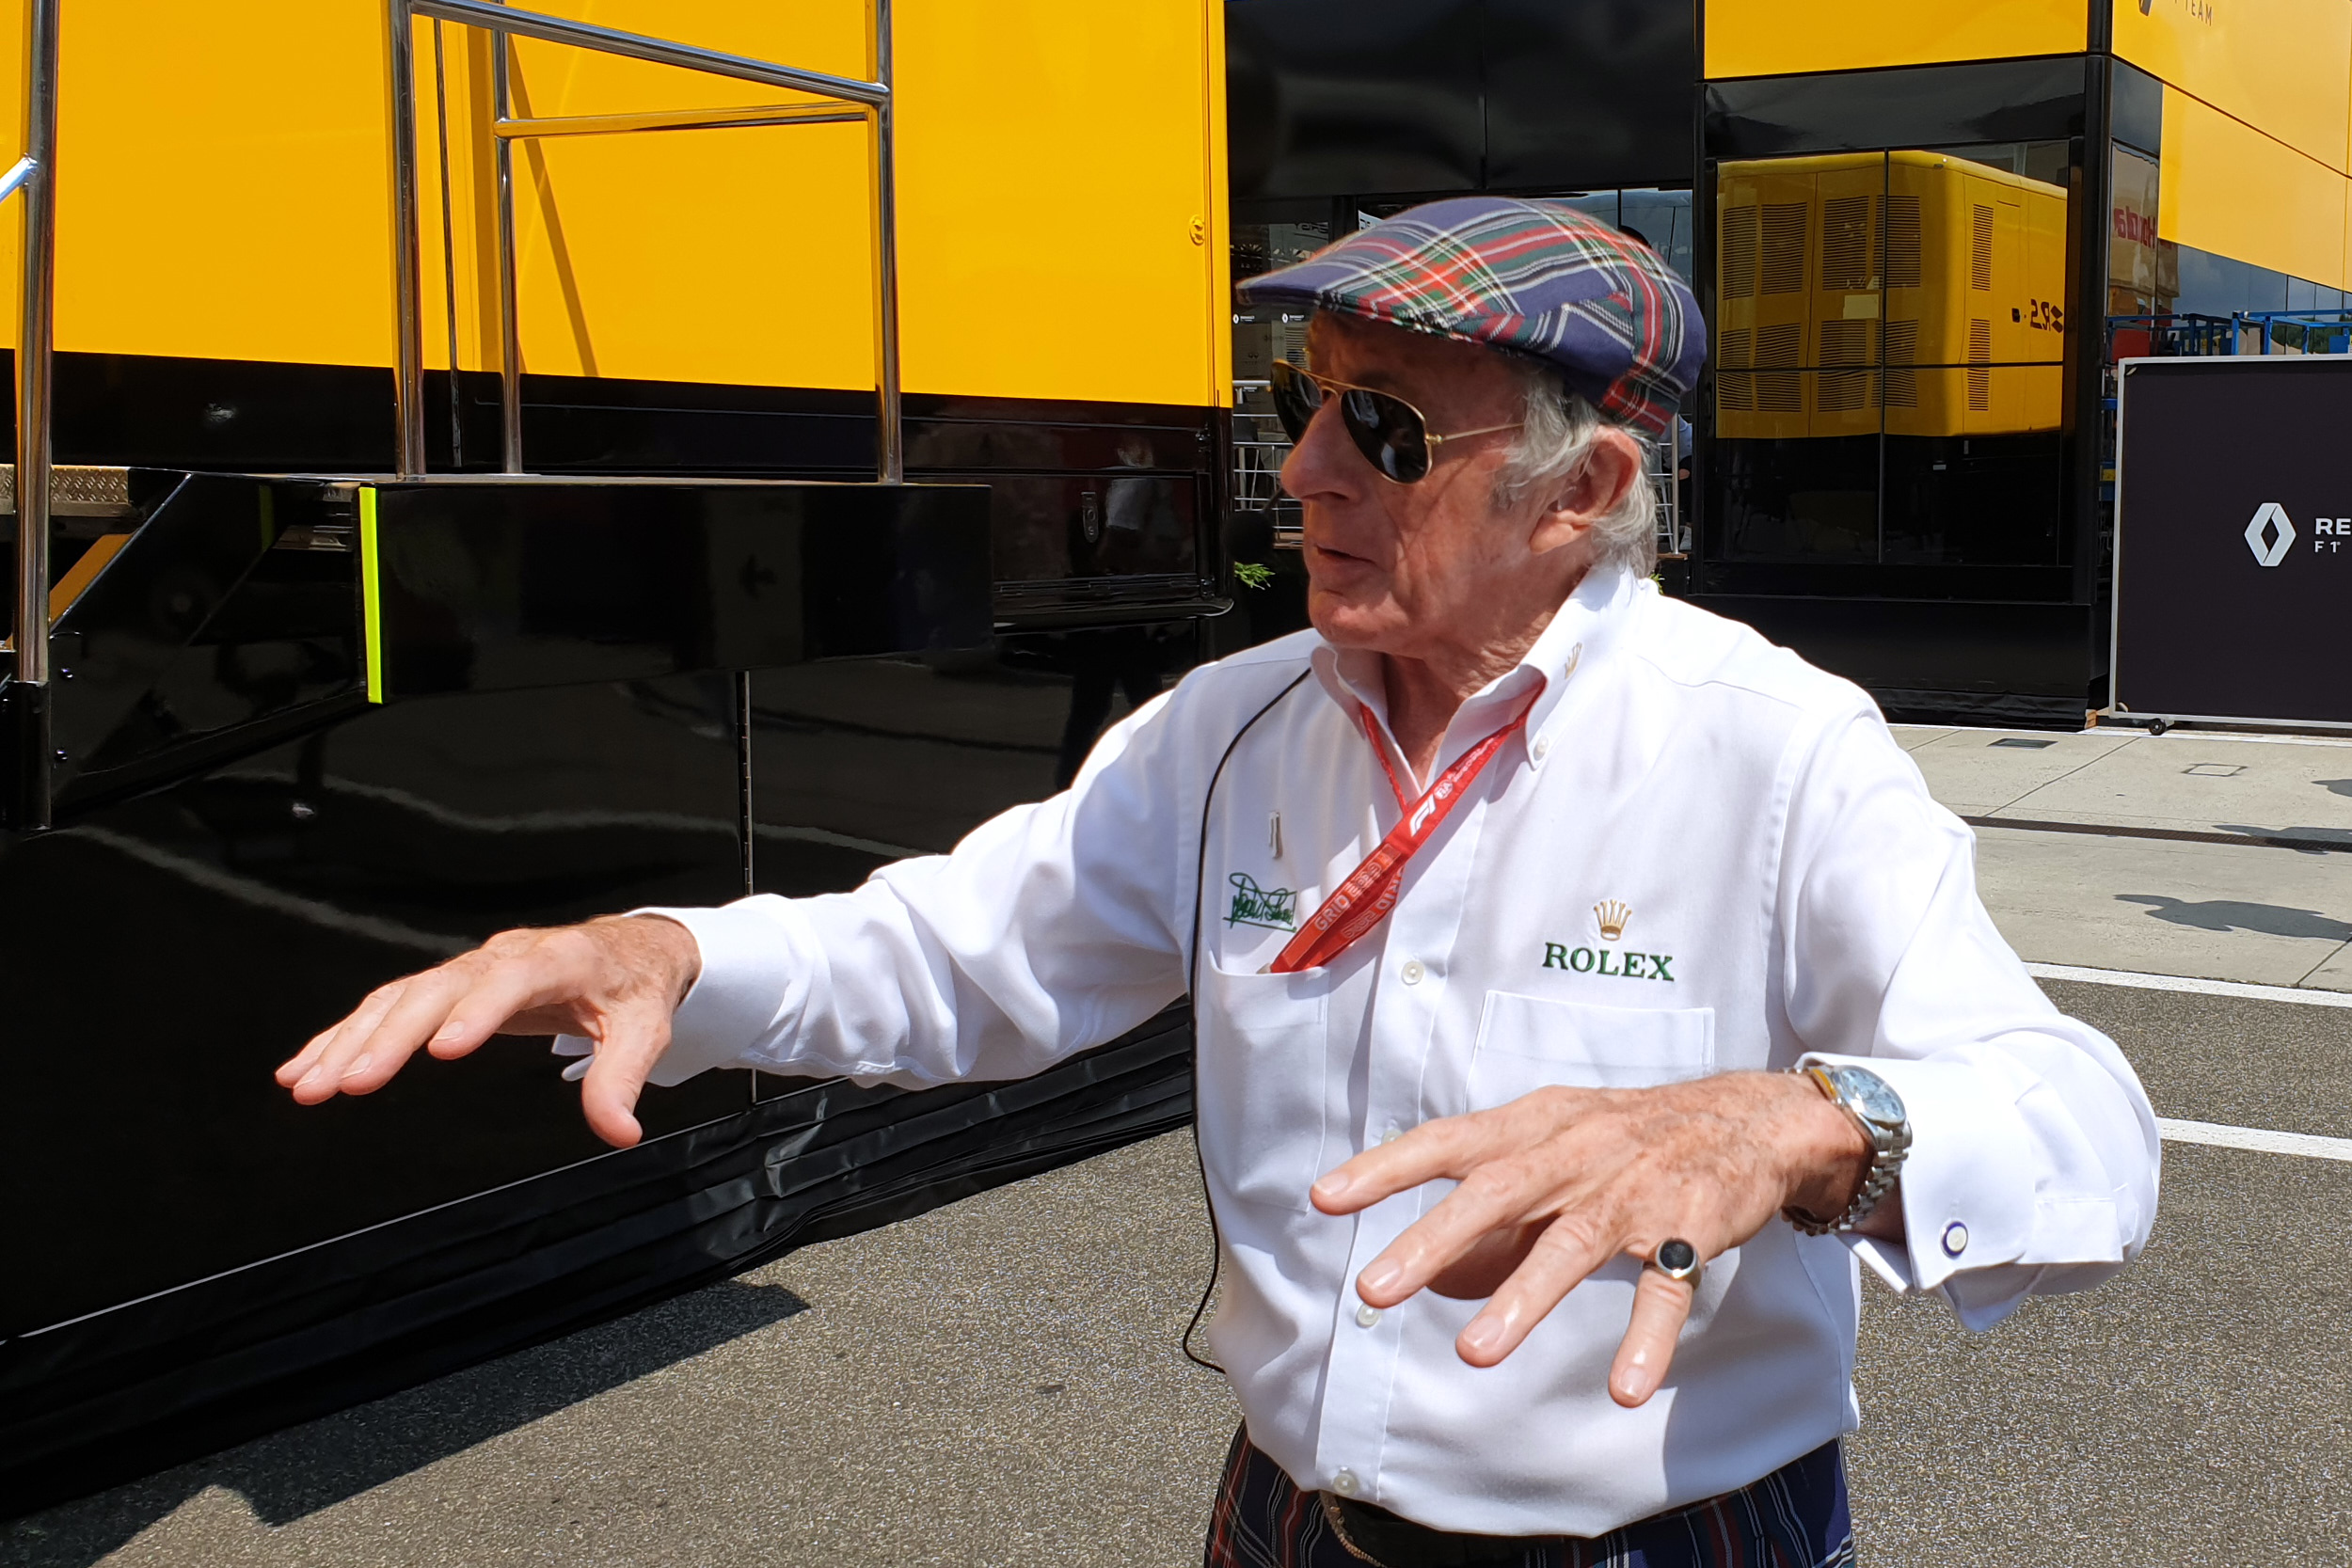 Sir Jackie Stewart at the Formula 1 Rolex Hungarian GP